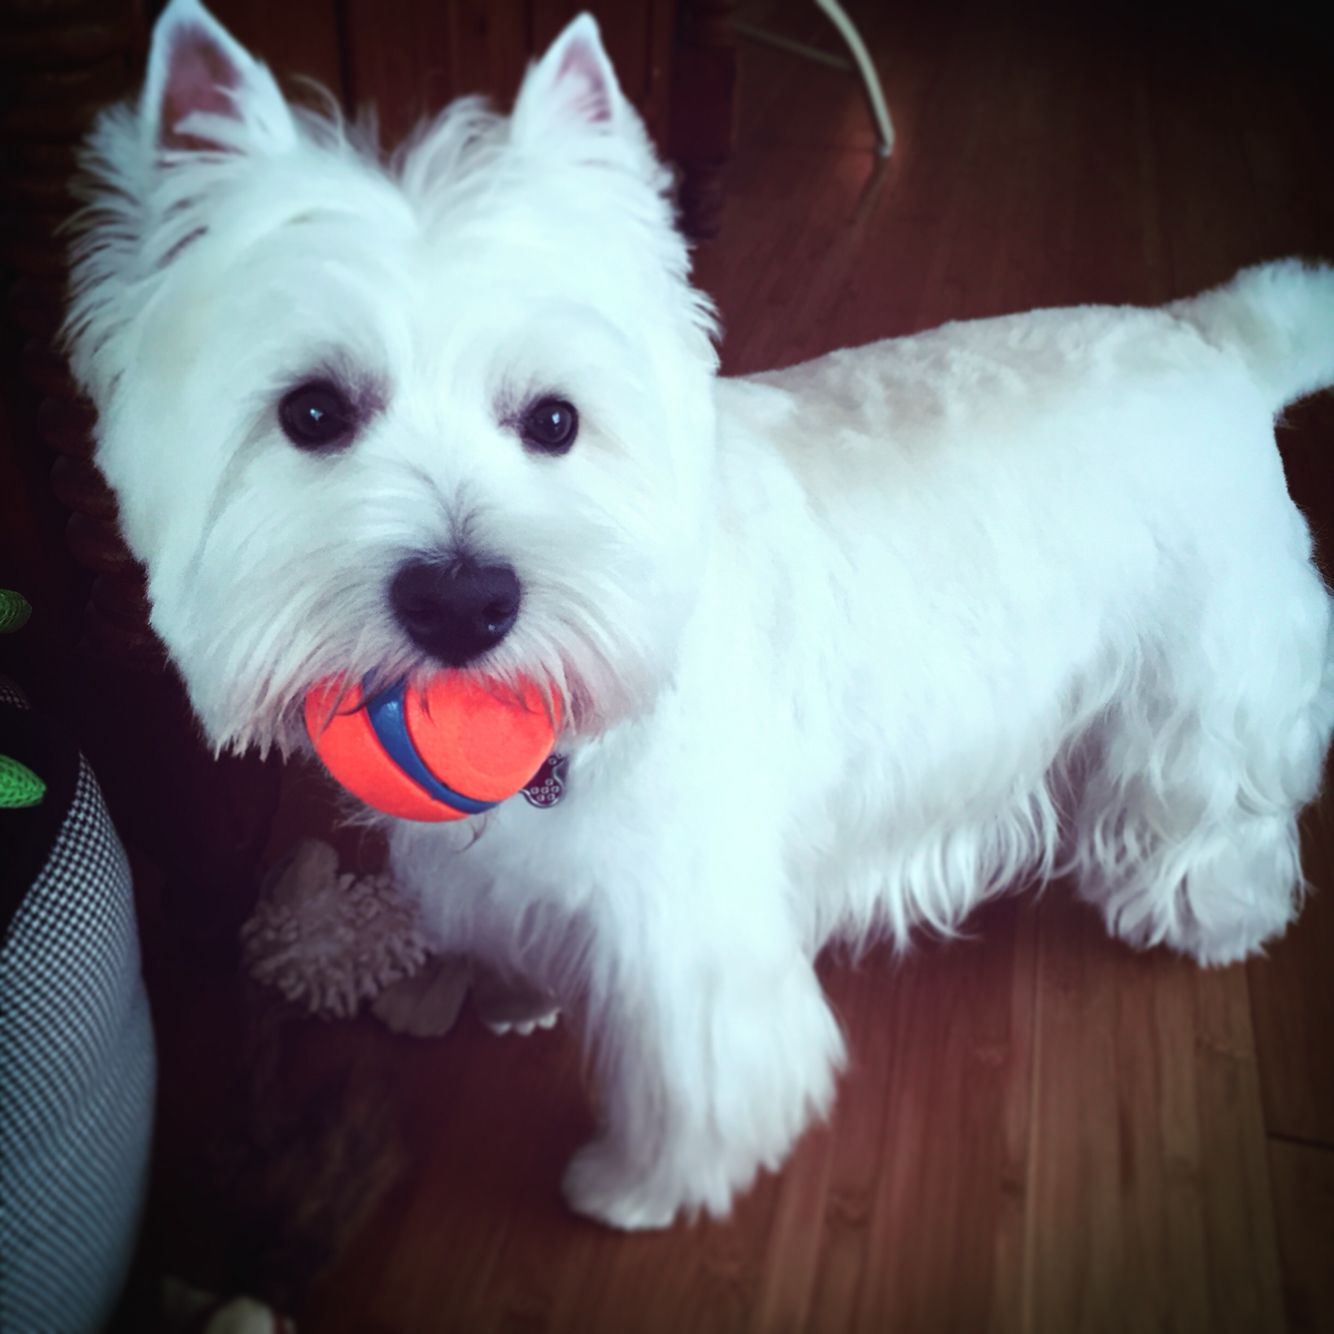 West Highland Terrier Puppies And Kitties Cute Animal Photos Cute Dogs